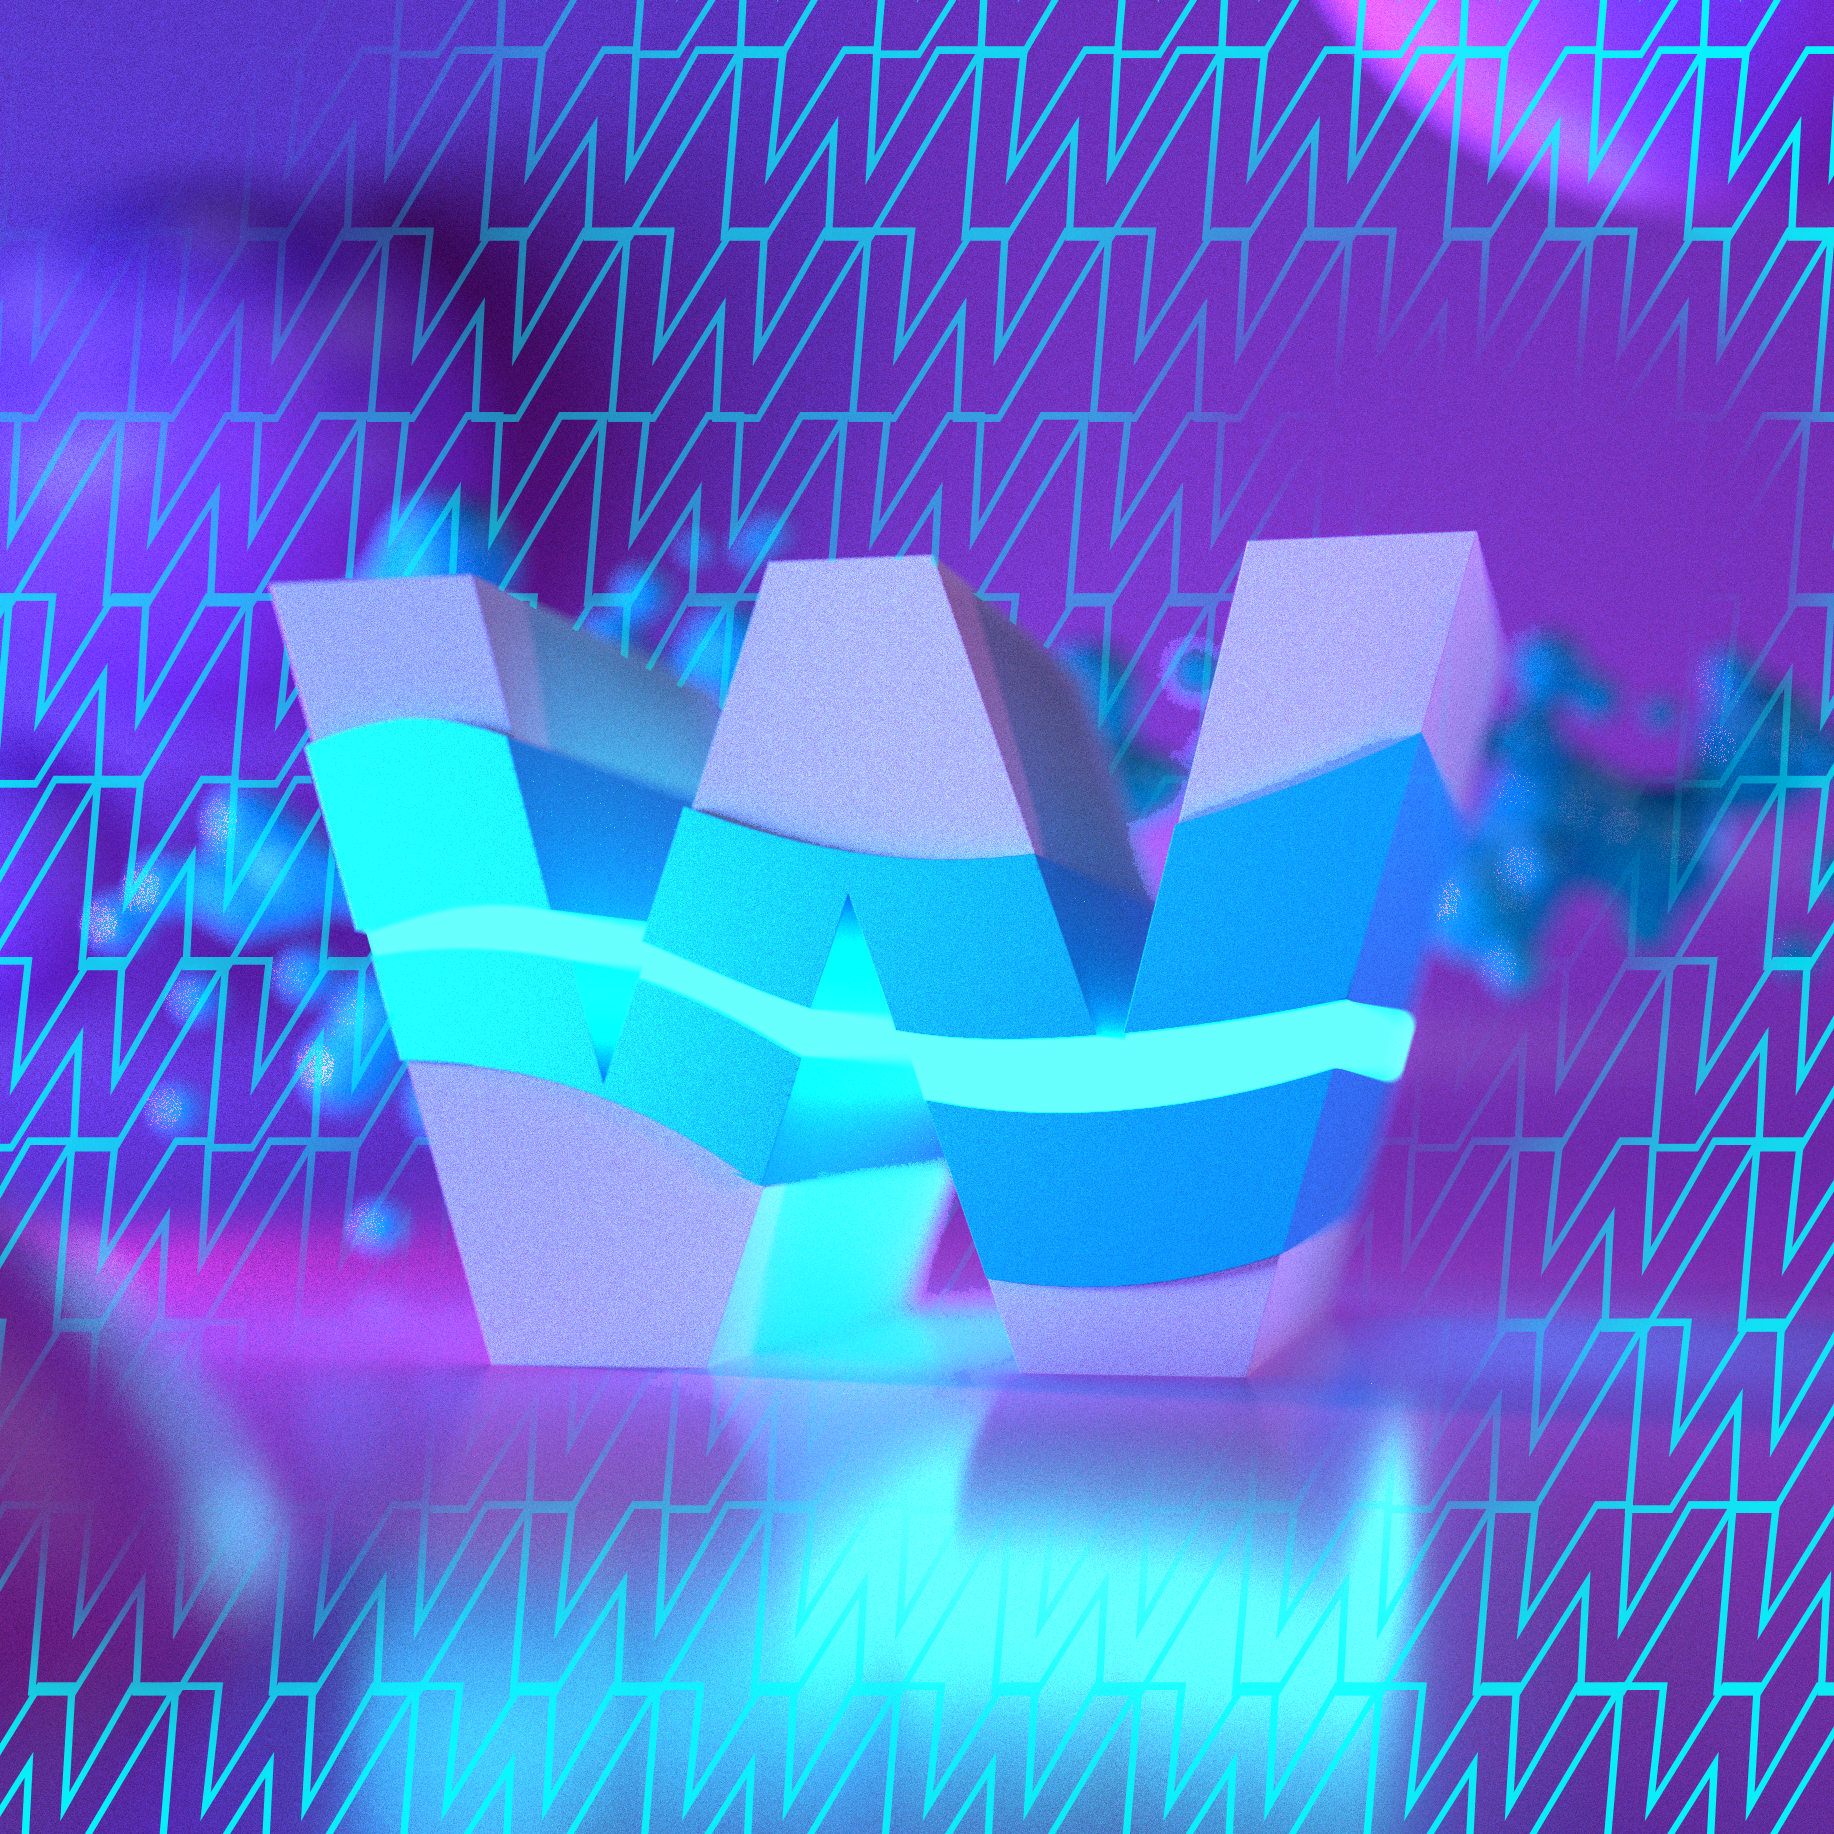 chris-winterton-W-typography-3D-36daysoftype.png